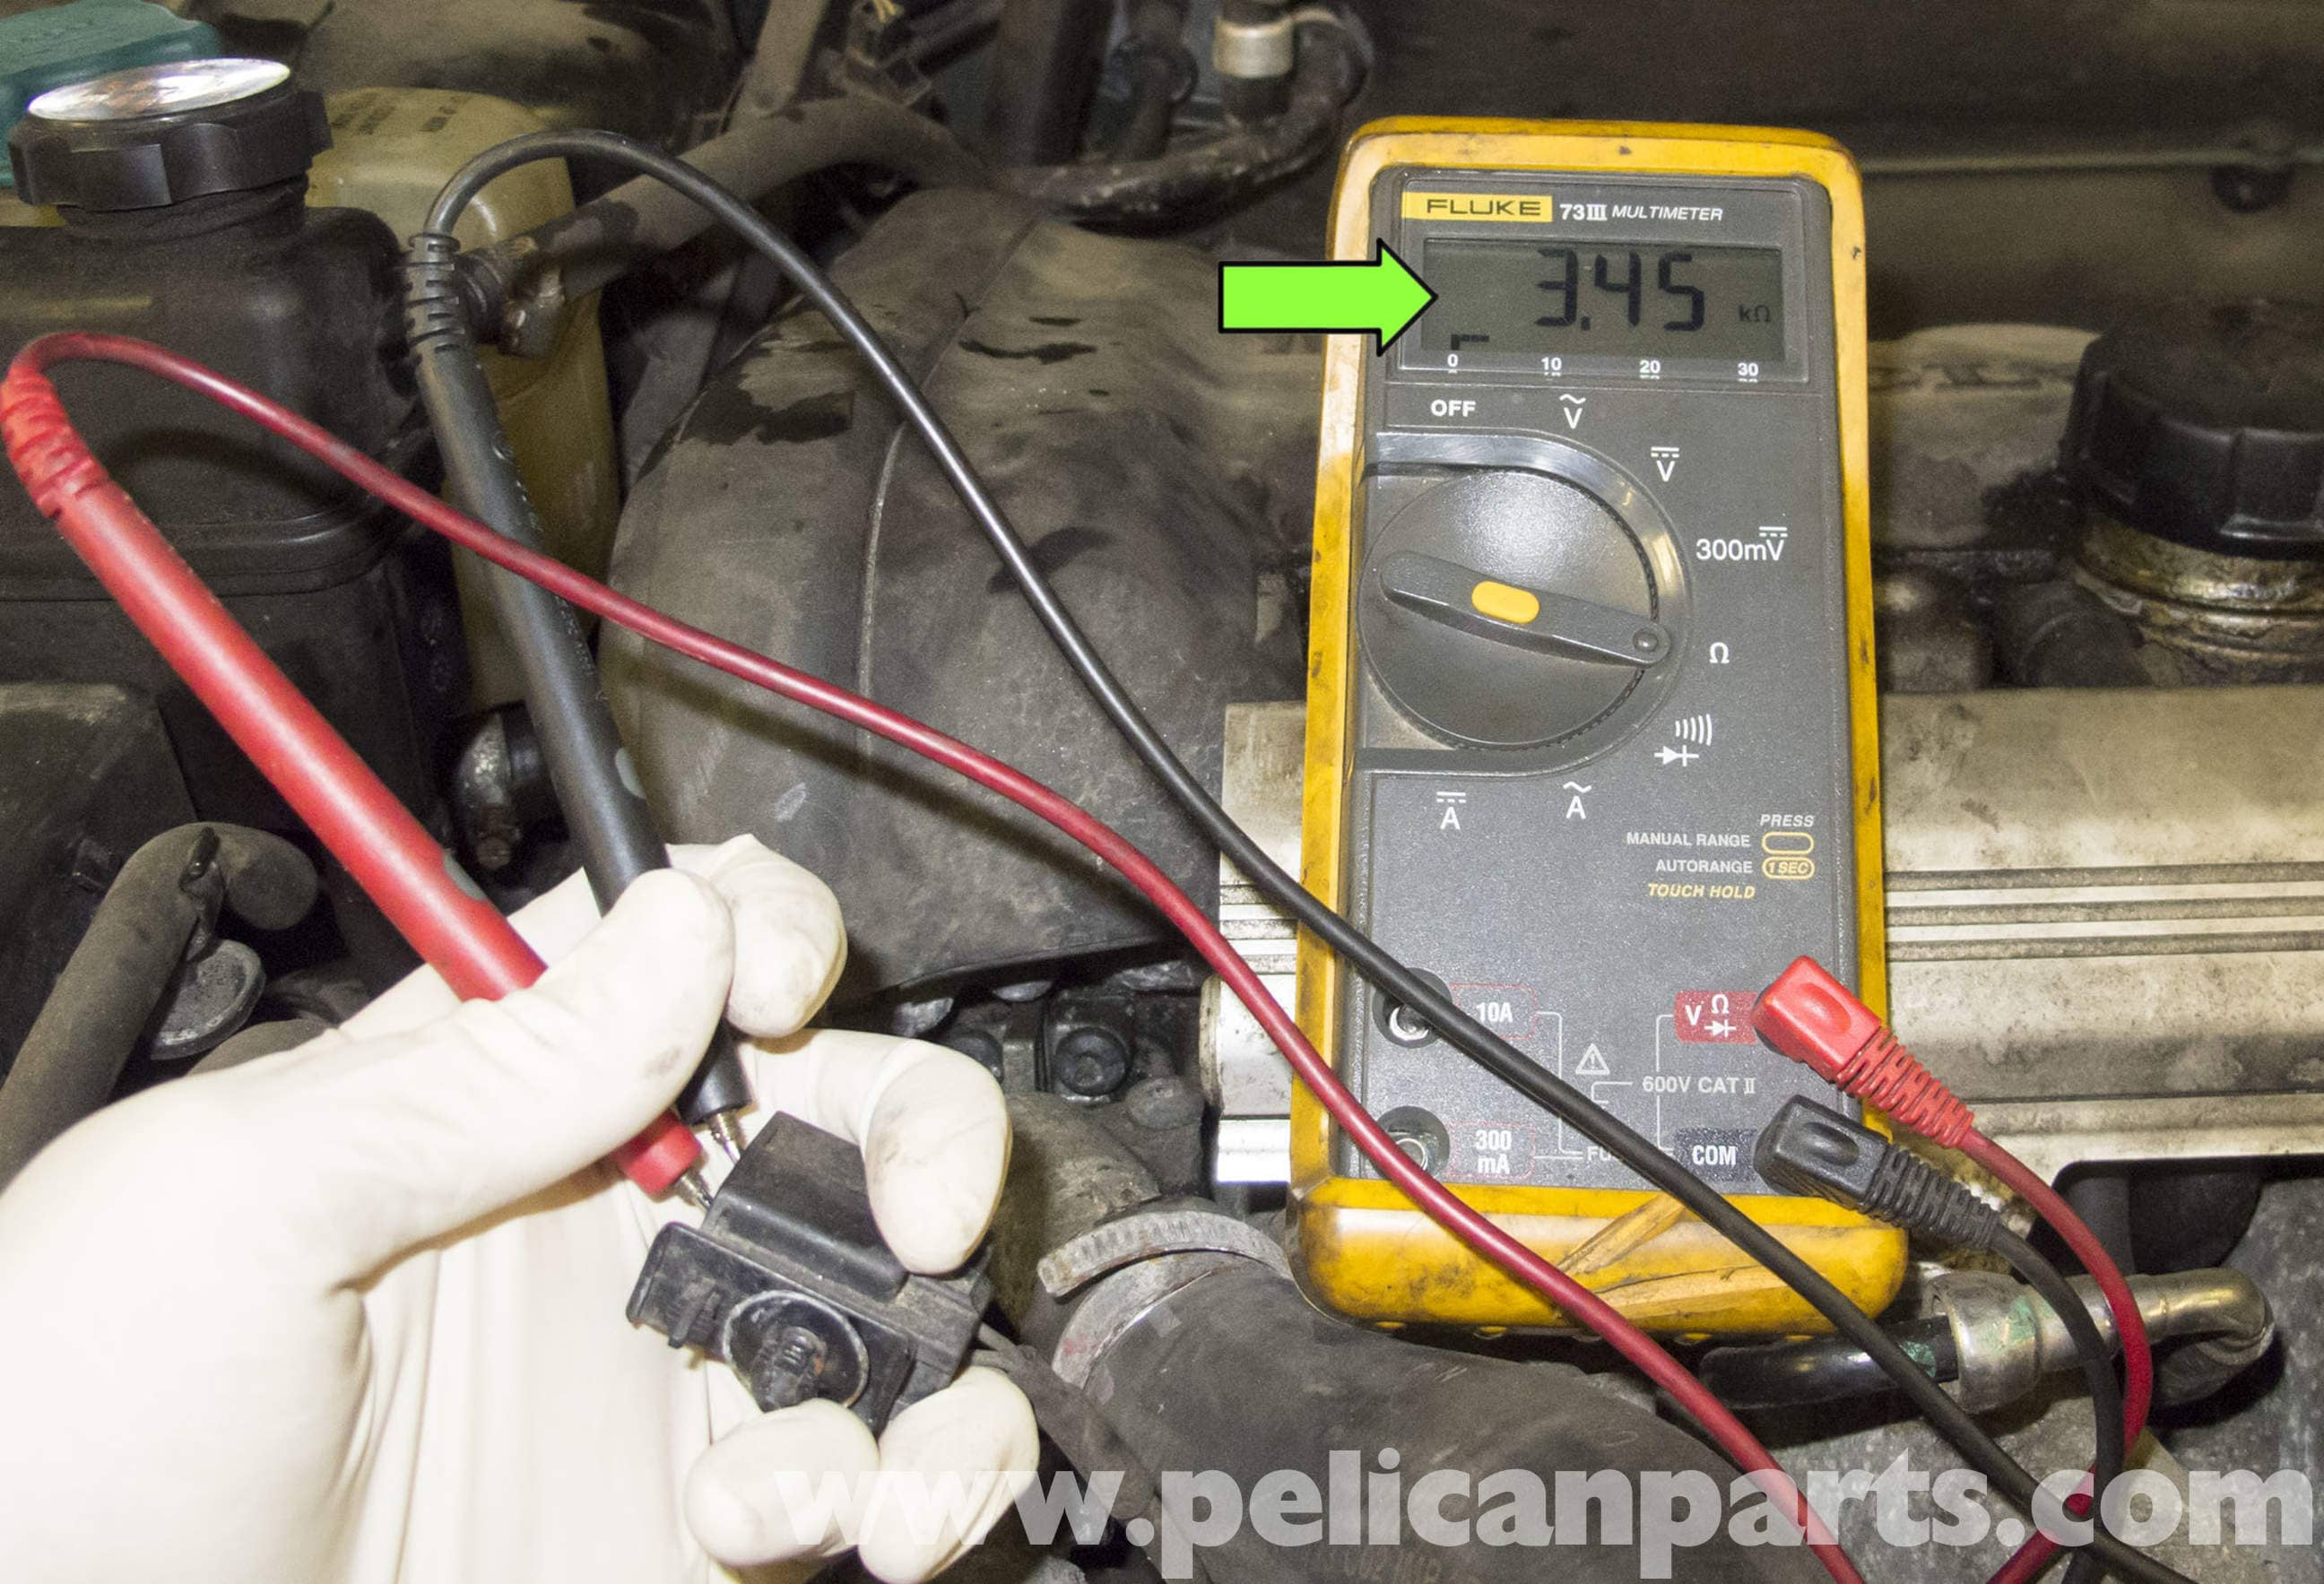 Volvo V70 Coolant Temperature Sensor Testing and Replacement (1998